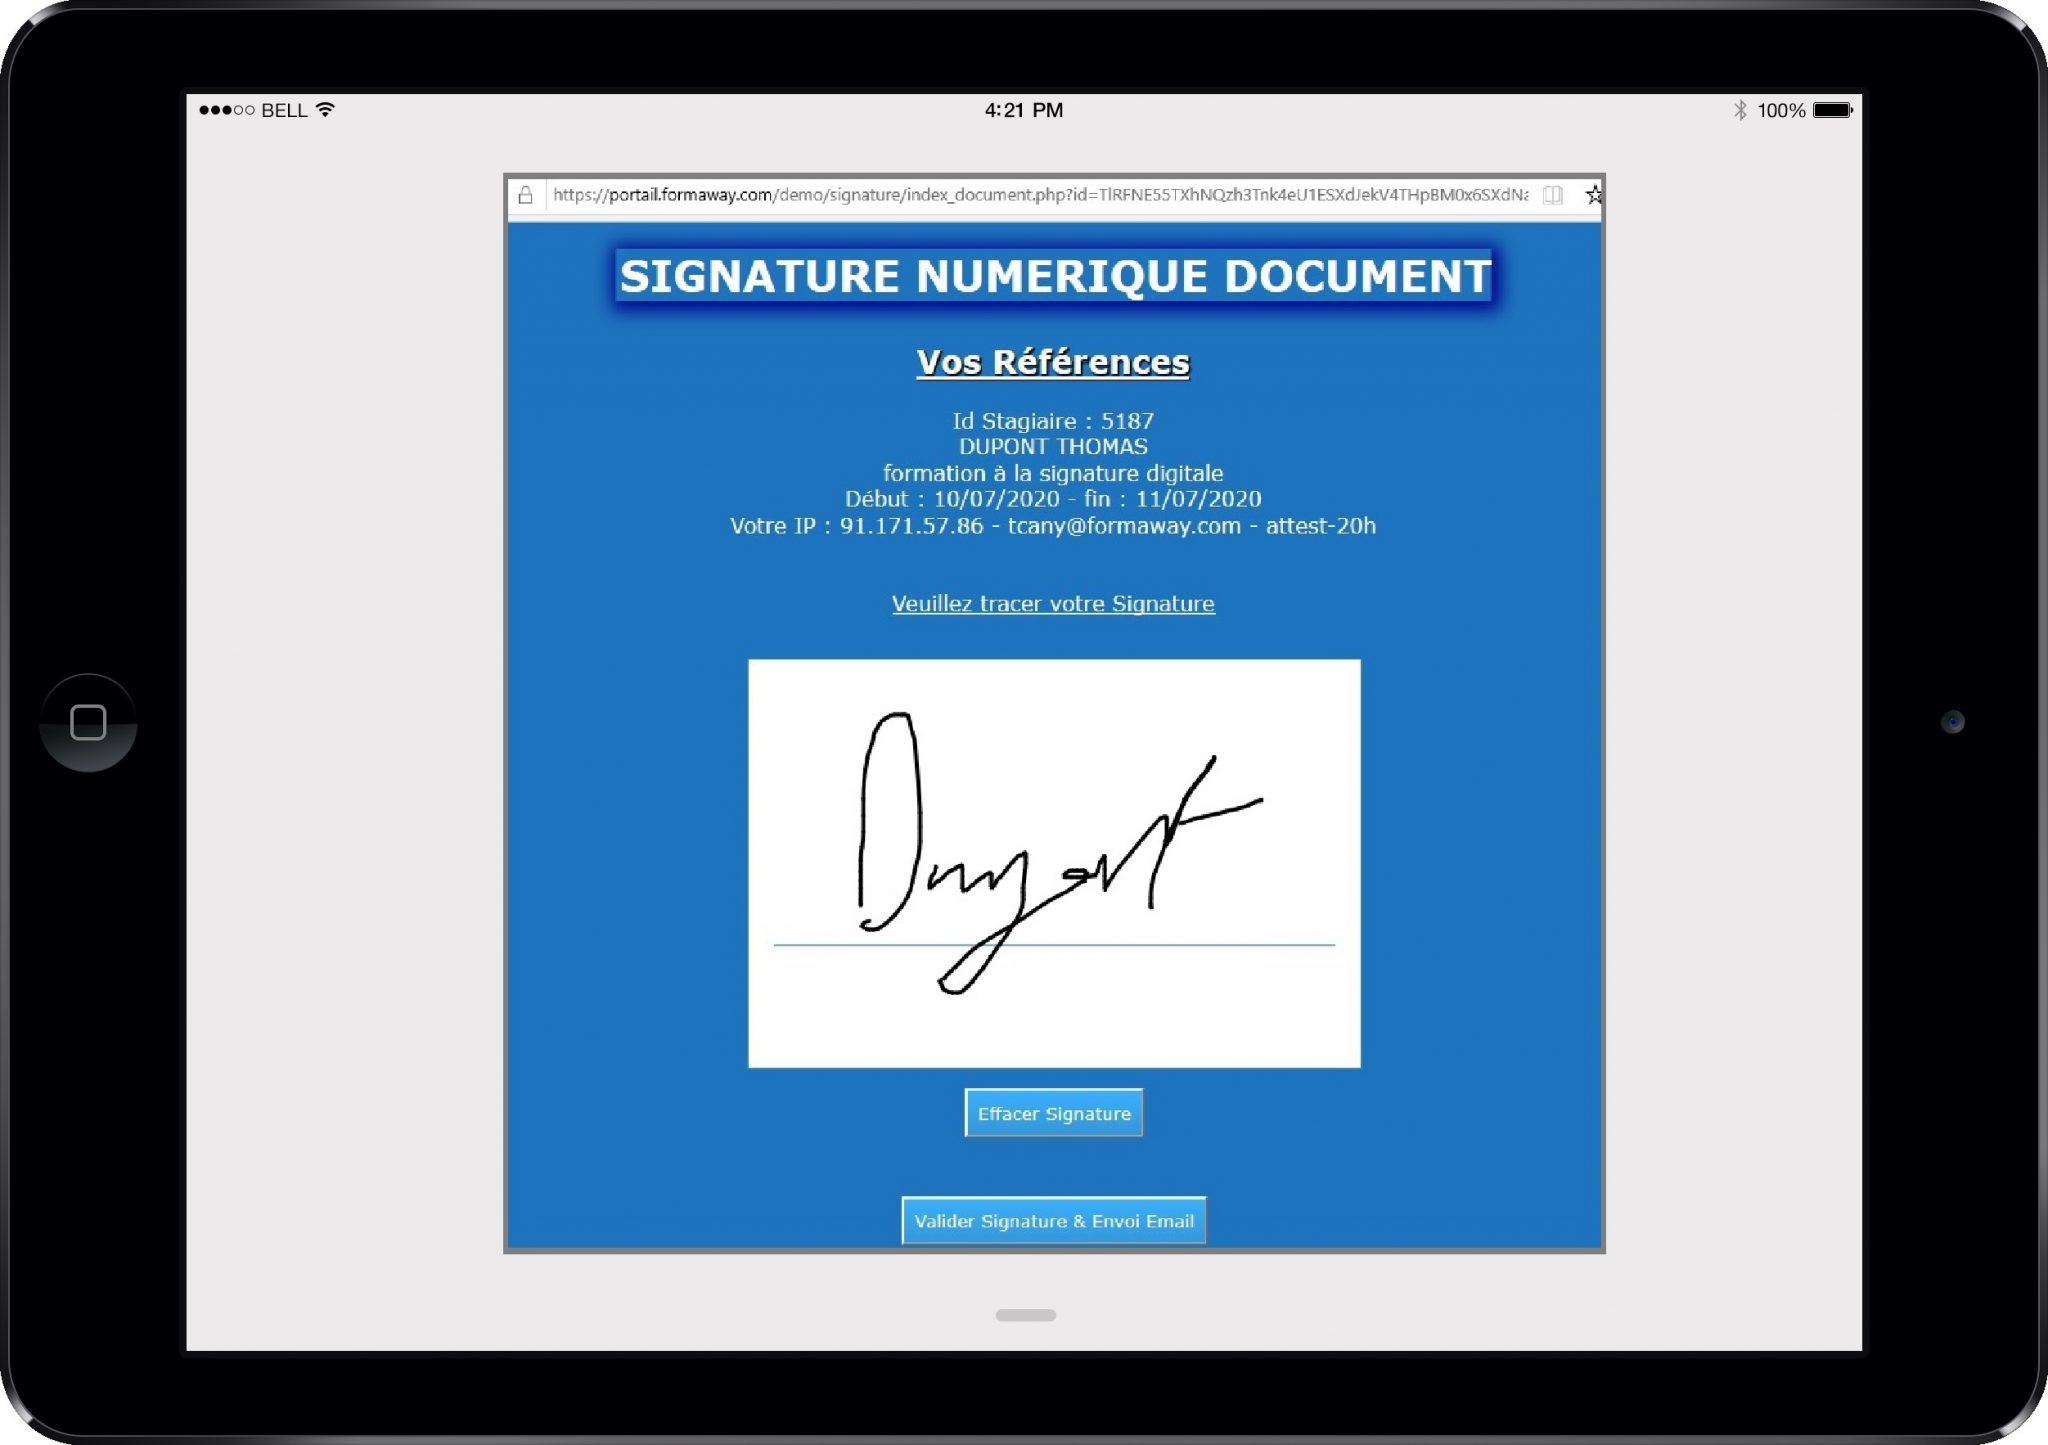 Signature_document